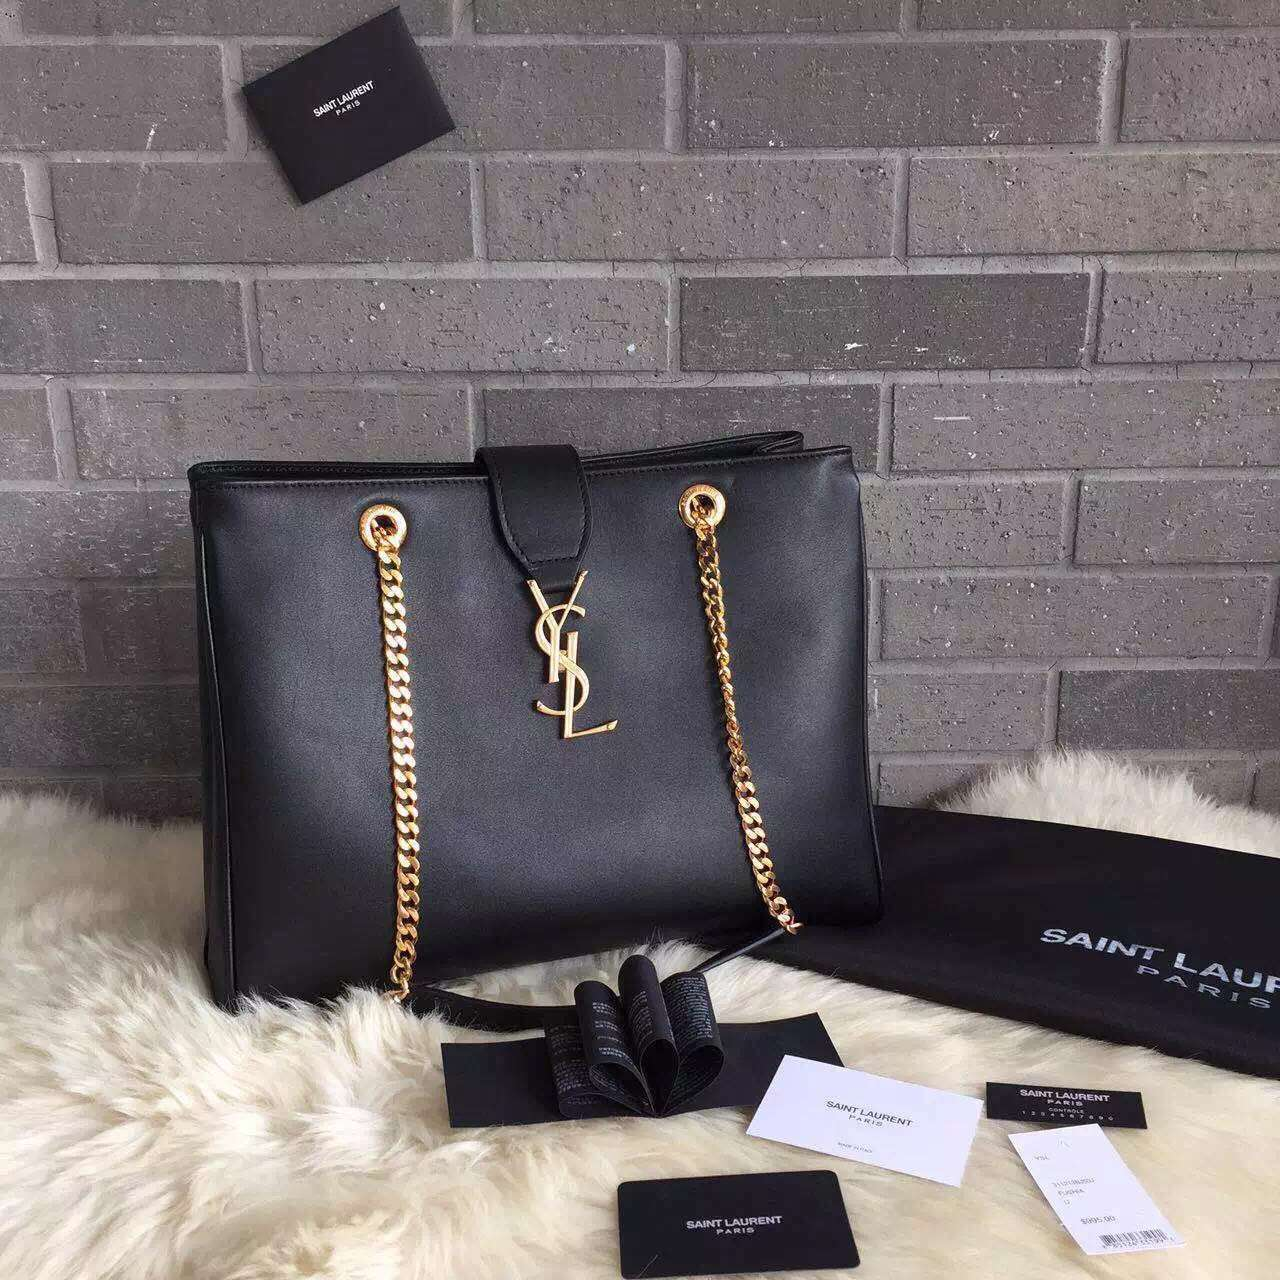 2015 New Saint Laurent Bag Cheap Sale-Saint Laurent Classic Monogram  Shopping Bag in Black 3fc1dfc5236bb